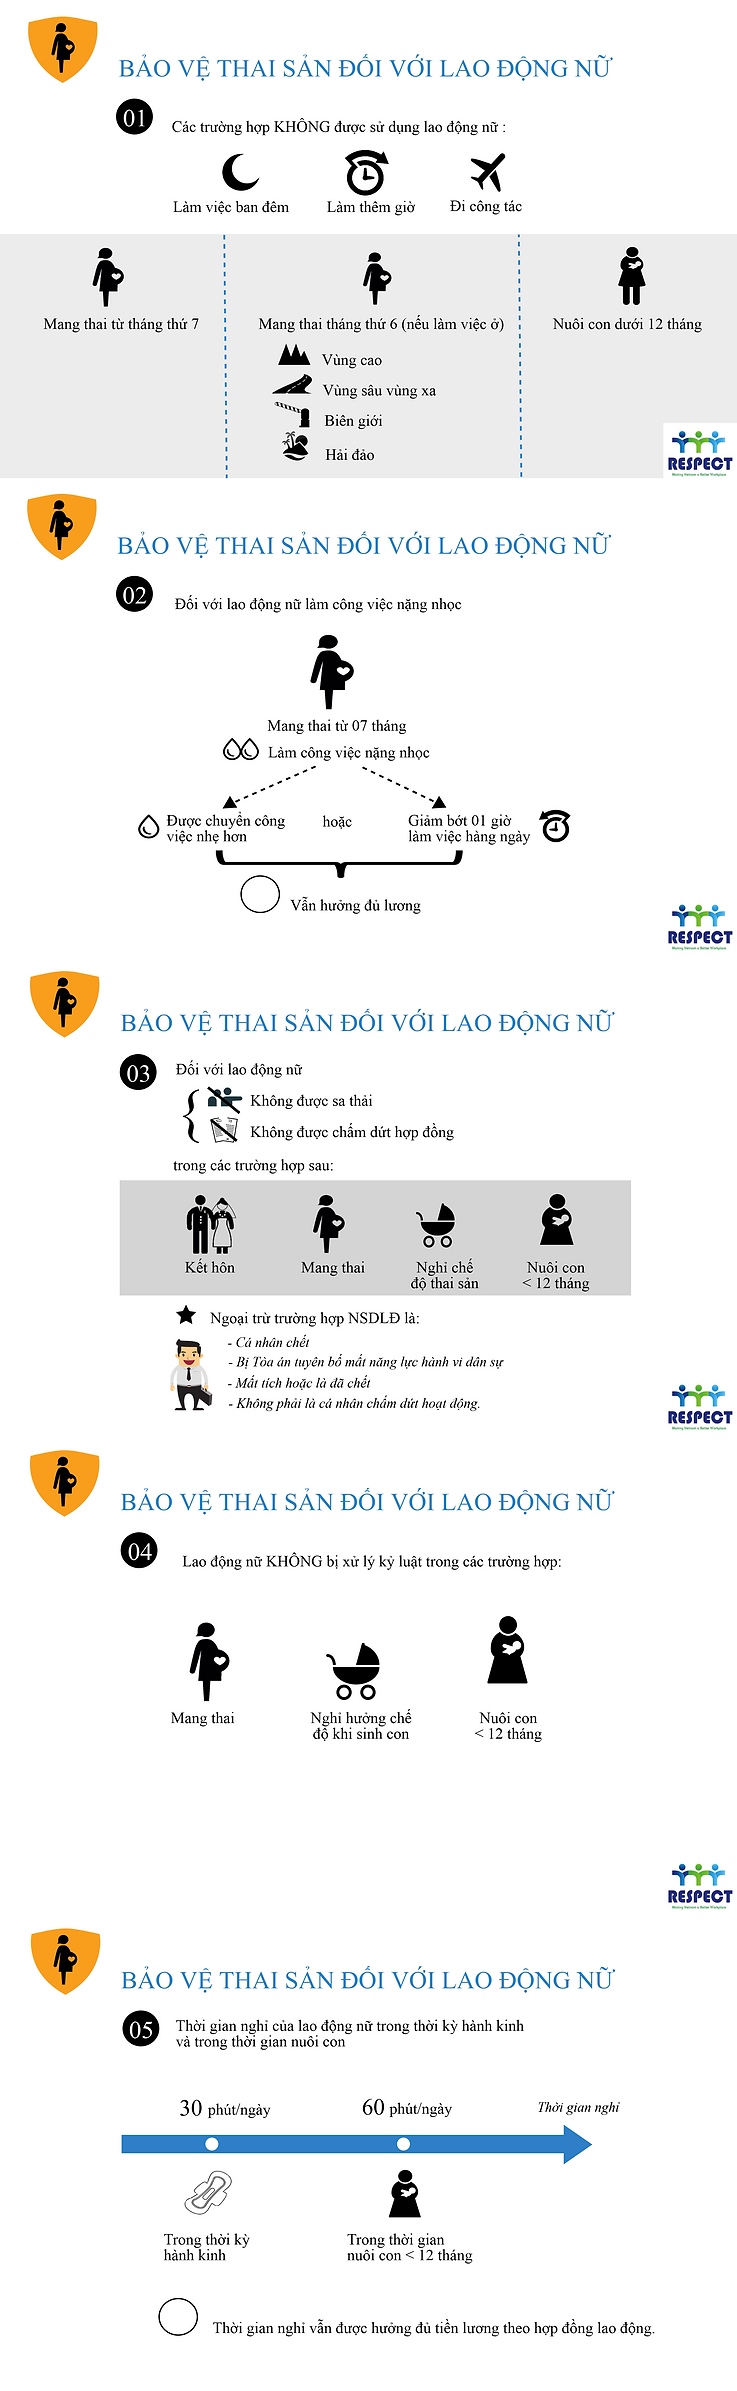 Article 155 Labor Law Vietnam.png